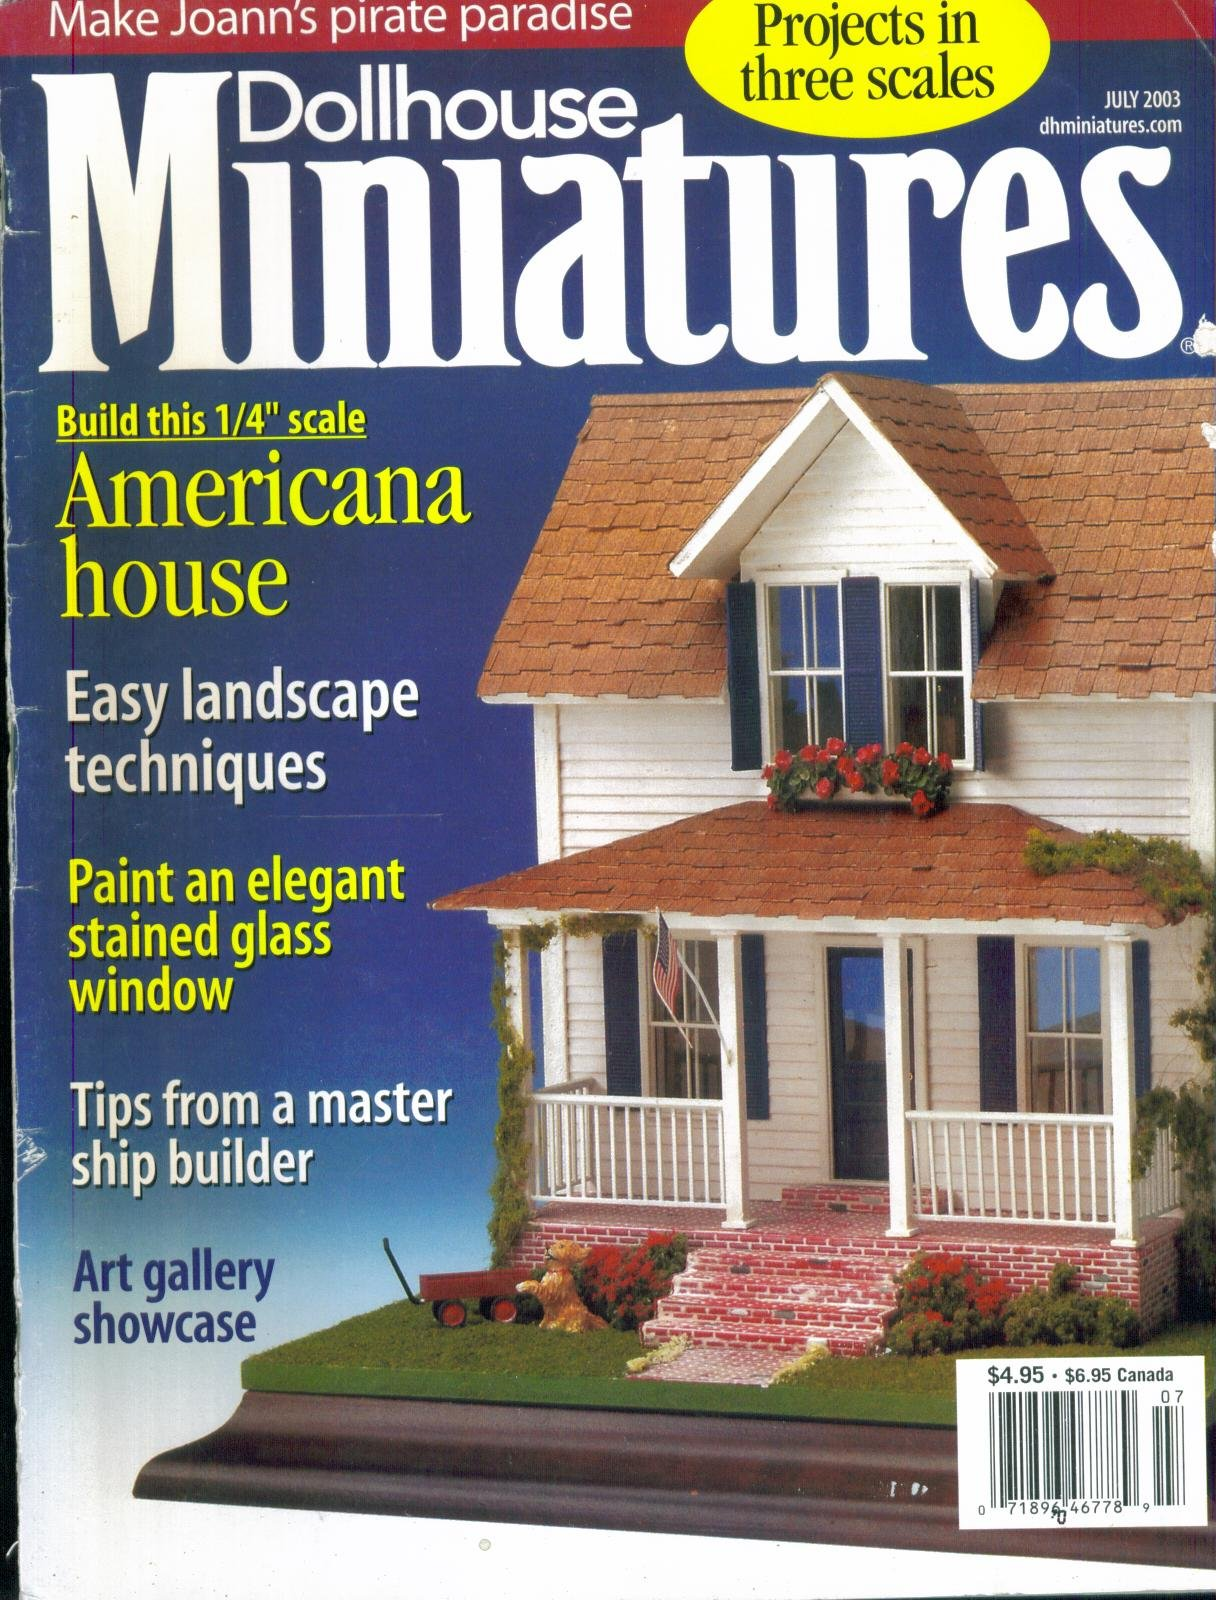 DOLLHOUSE MINIATURES. JULY 2003. SINGLE ISSUE MAGAZINE. BUILD AMERICANA HOUSE; EASY LANDSCAPE TECHNIQUES; PAINT STAINED GLASS WINDOW; TIPS FROM MASTER SHIP BUILDER; ART GALLERY SHOWCASE.